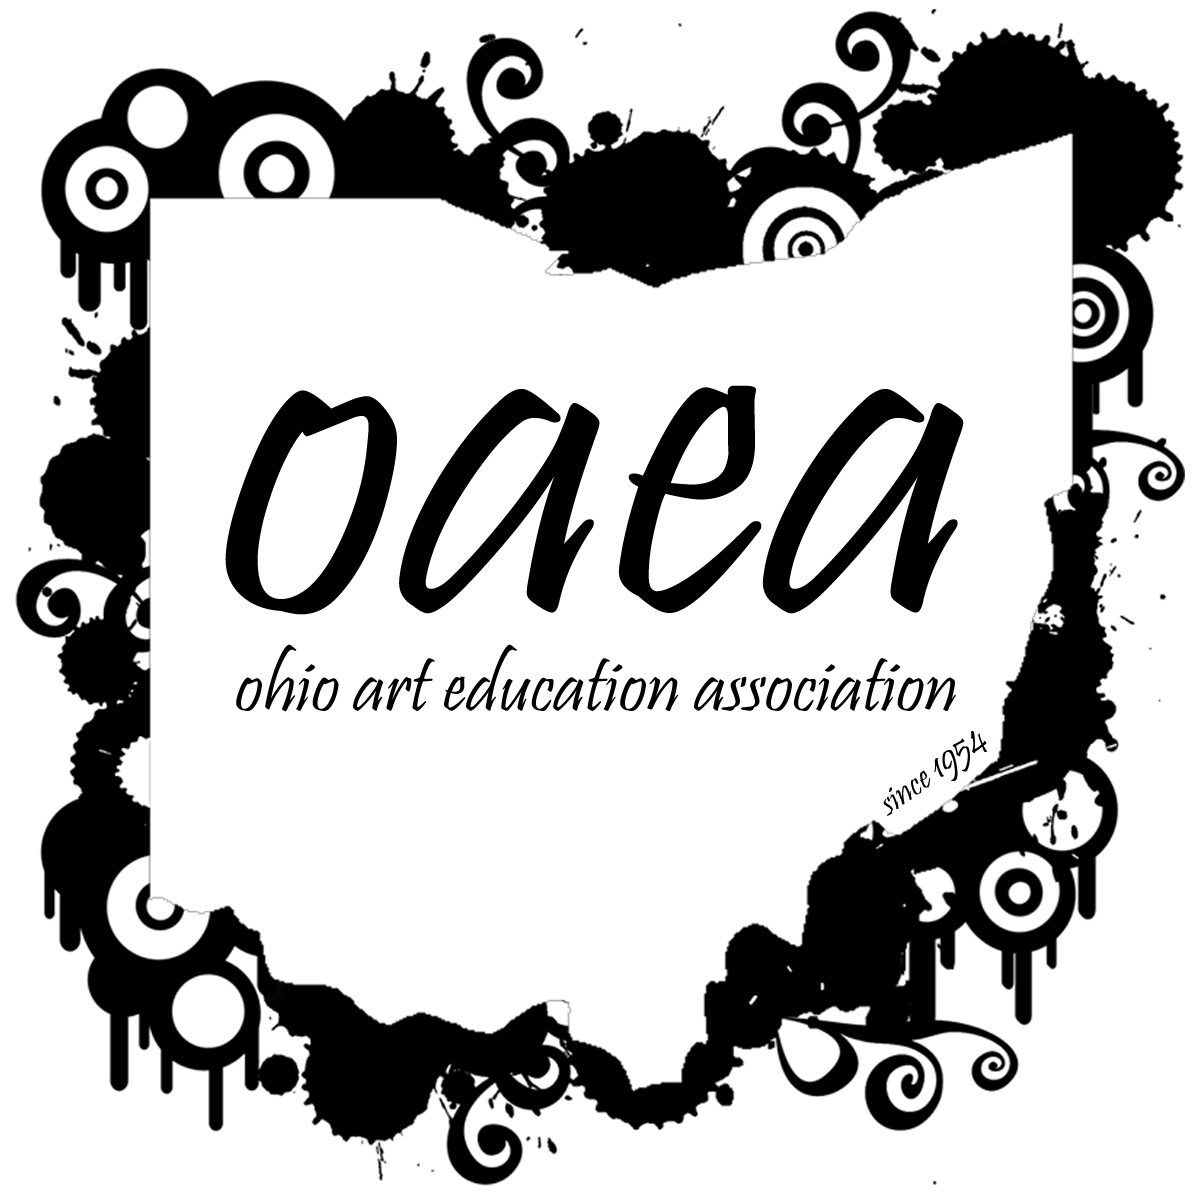 ohio art education association